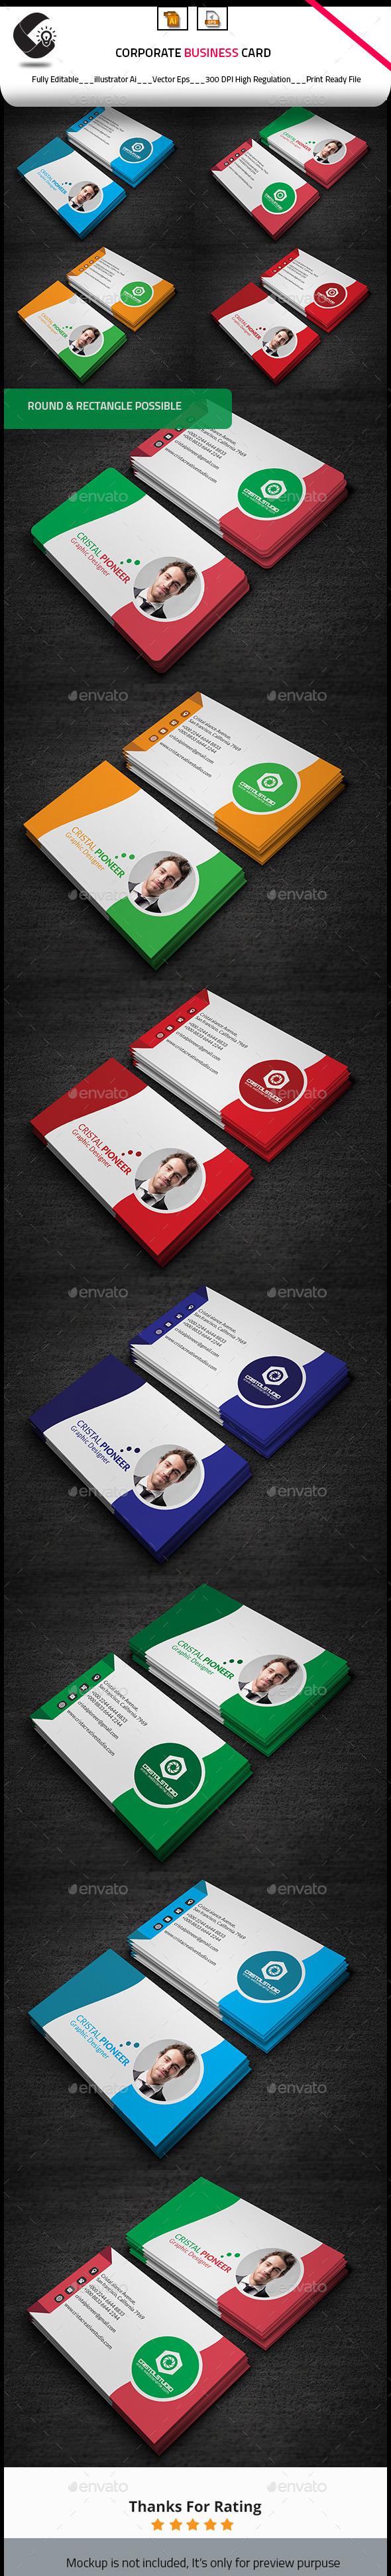 Personal Creative Business Card - Creative Business Cards